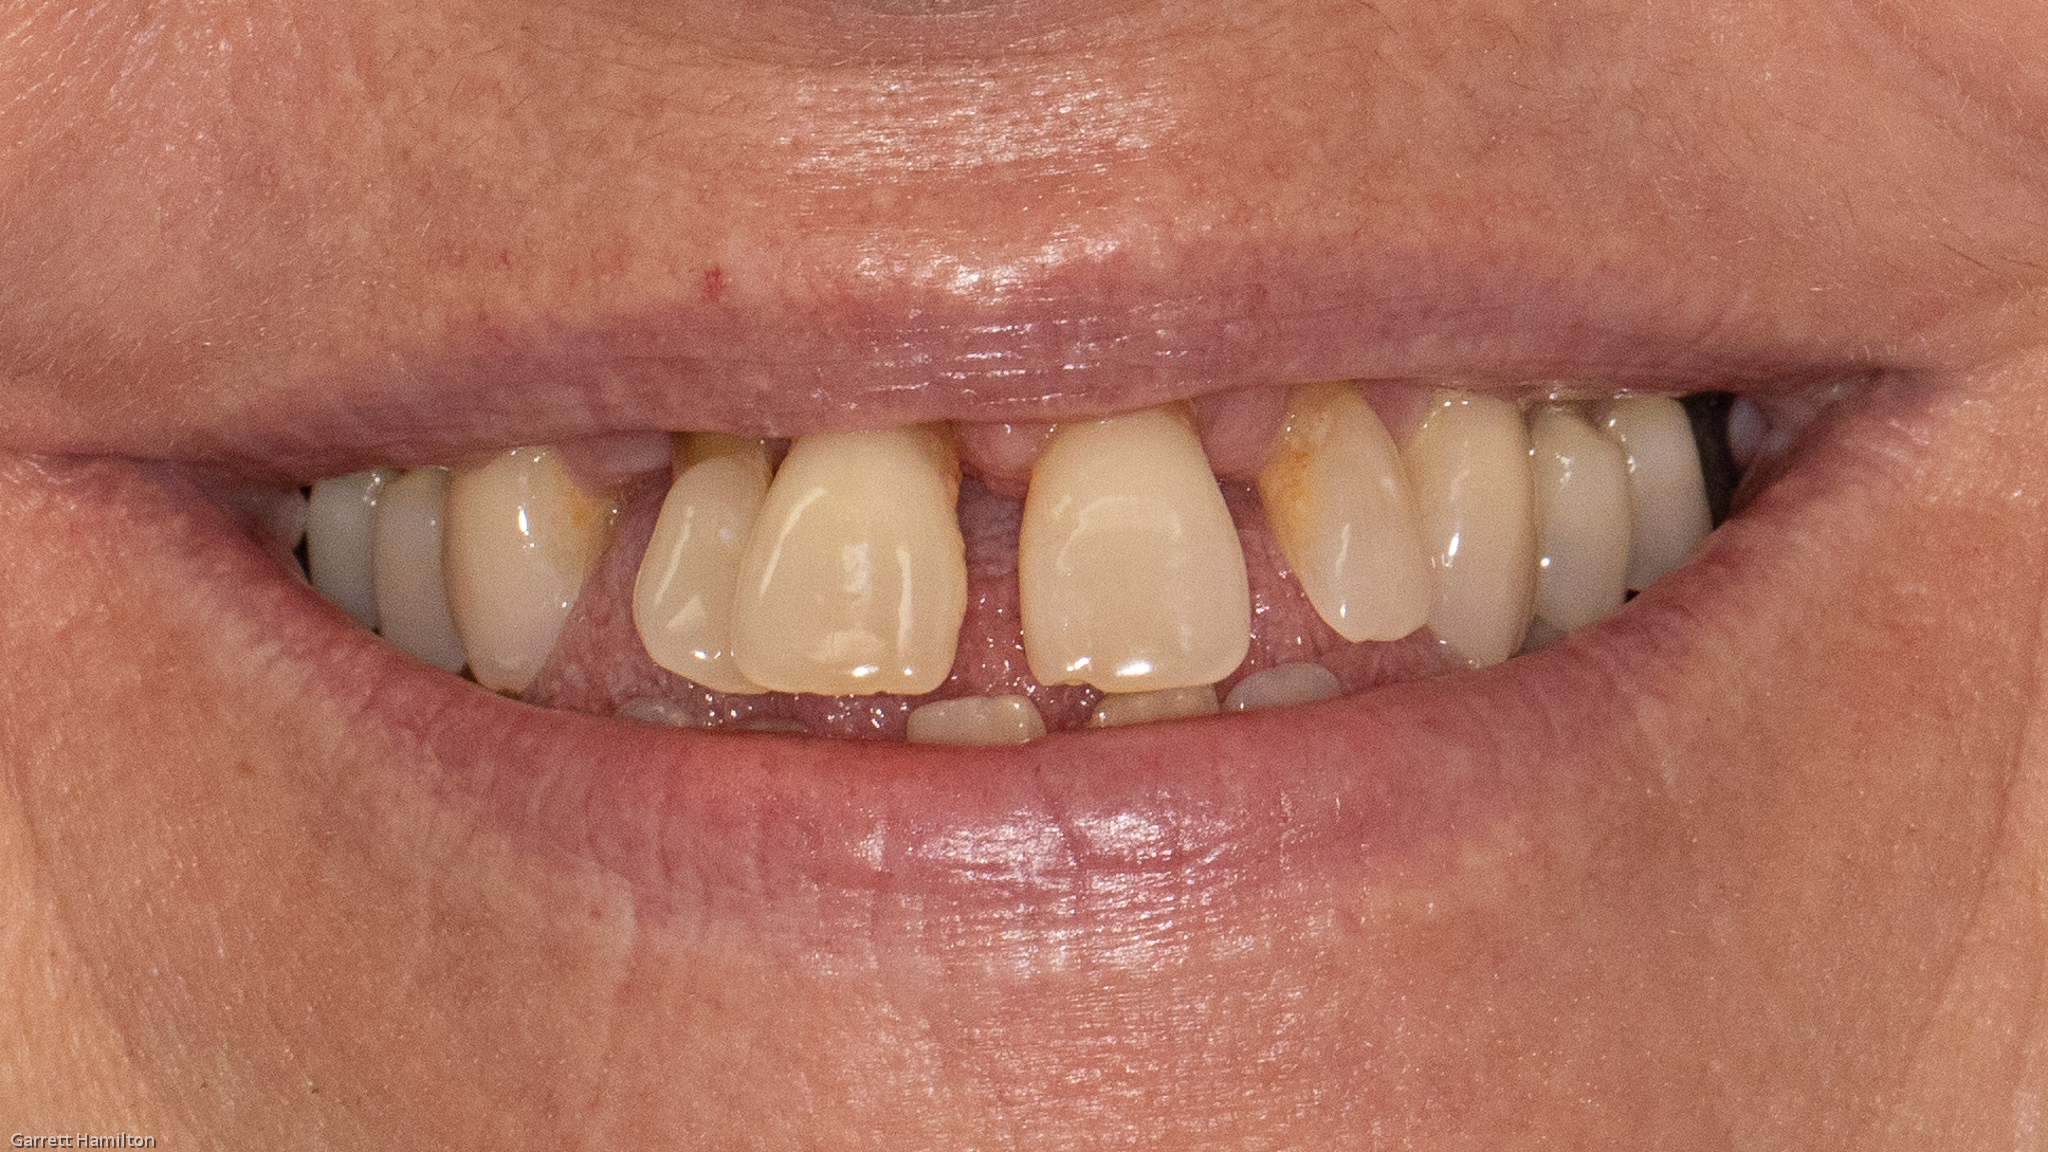 Jefferson City Dentist - tooth filling - composite tooth filling - front tooth filling, affordable dentures, affordable dentures columbia mo jefferson city dentist - columbia mo dentist - dental implants